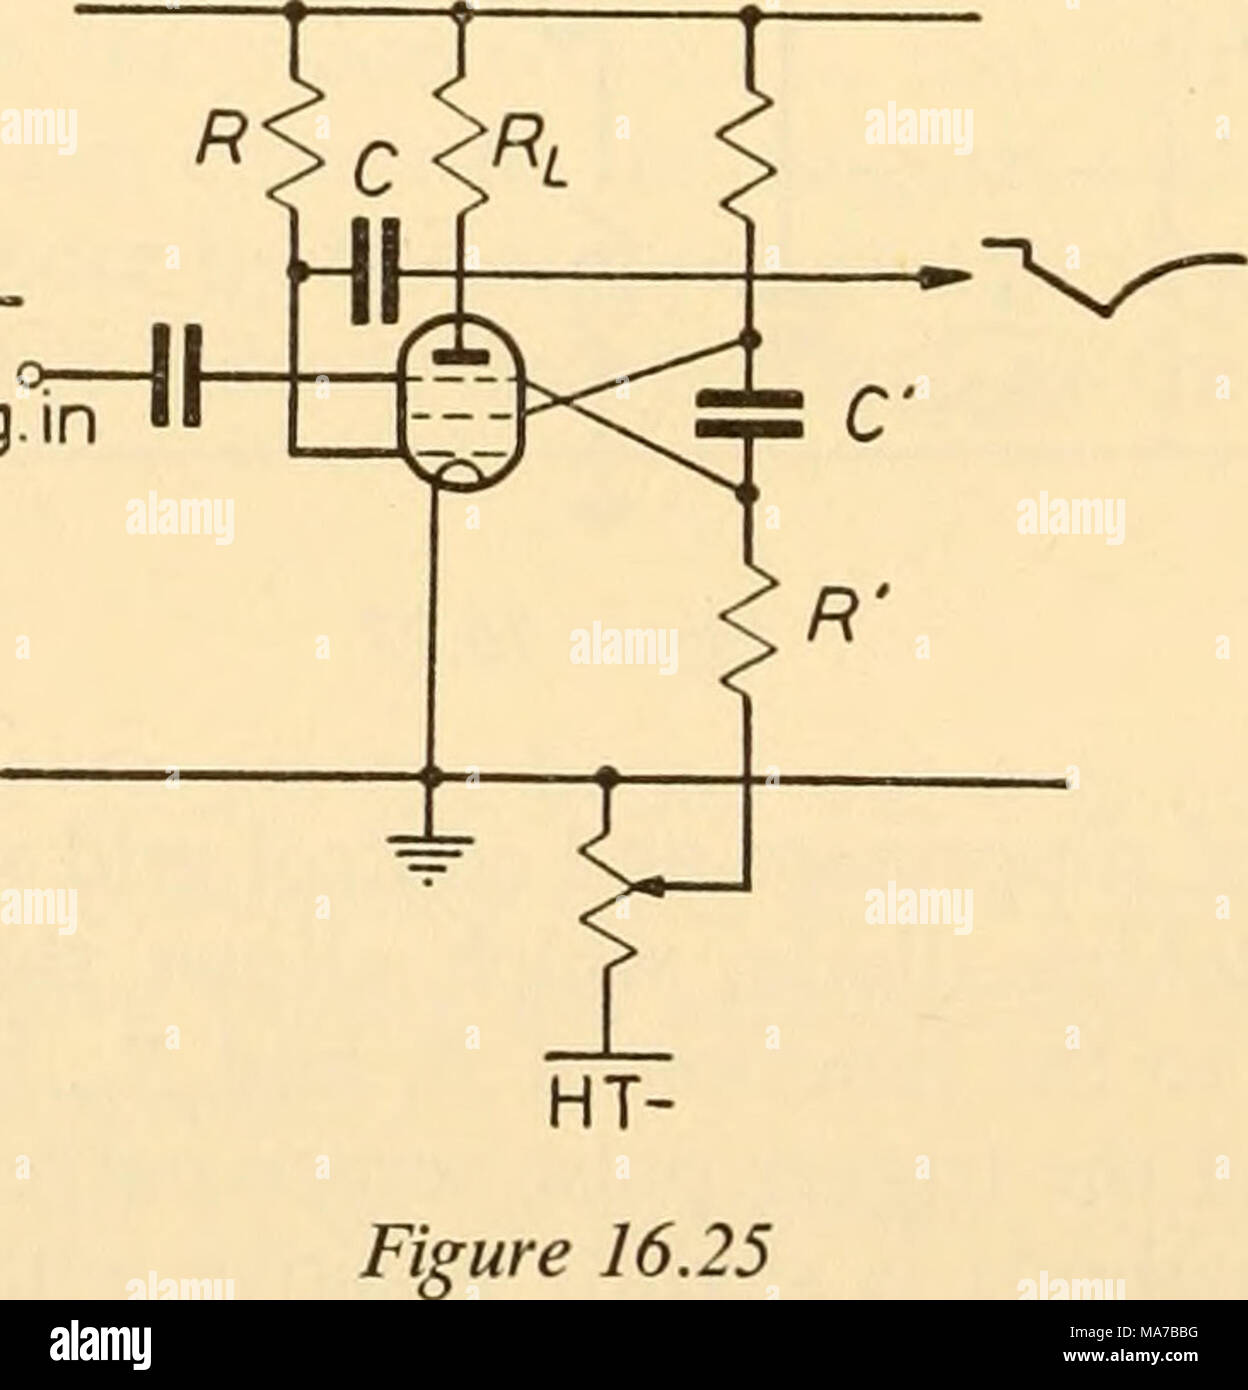 Electronic Apparatus For Biological Research In The Latter Circuit App Suppressor Bias Is If